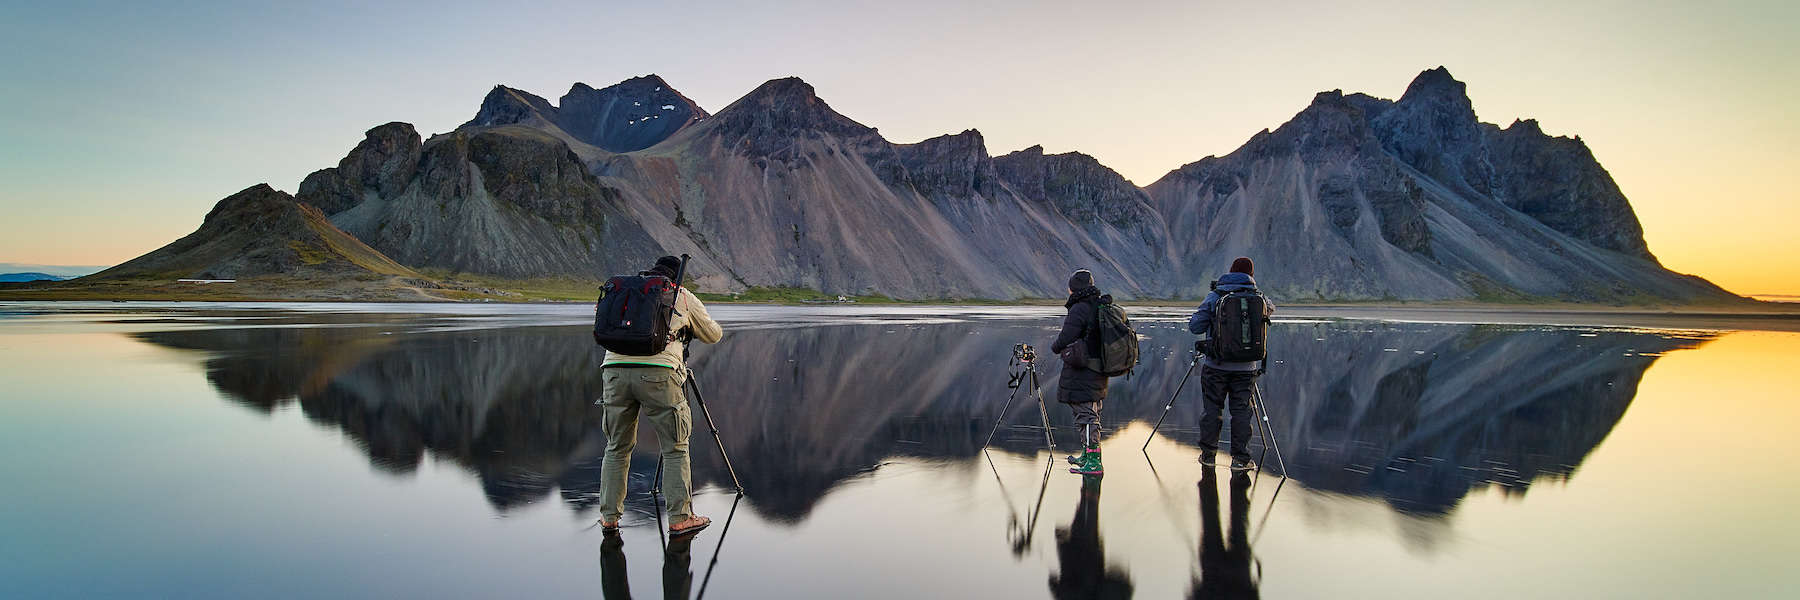 Five Tips For Choosing the Best Photography Travel Destination